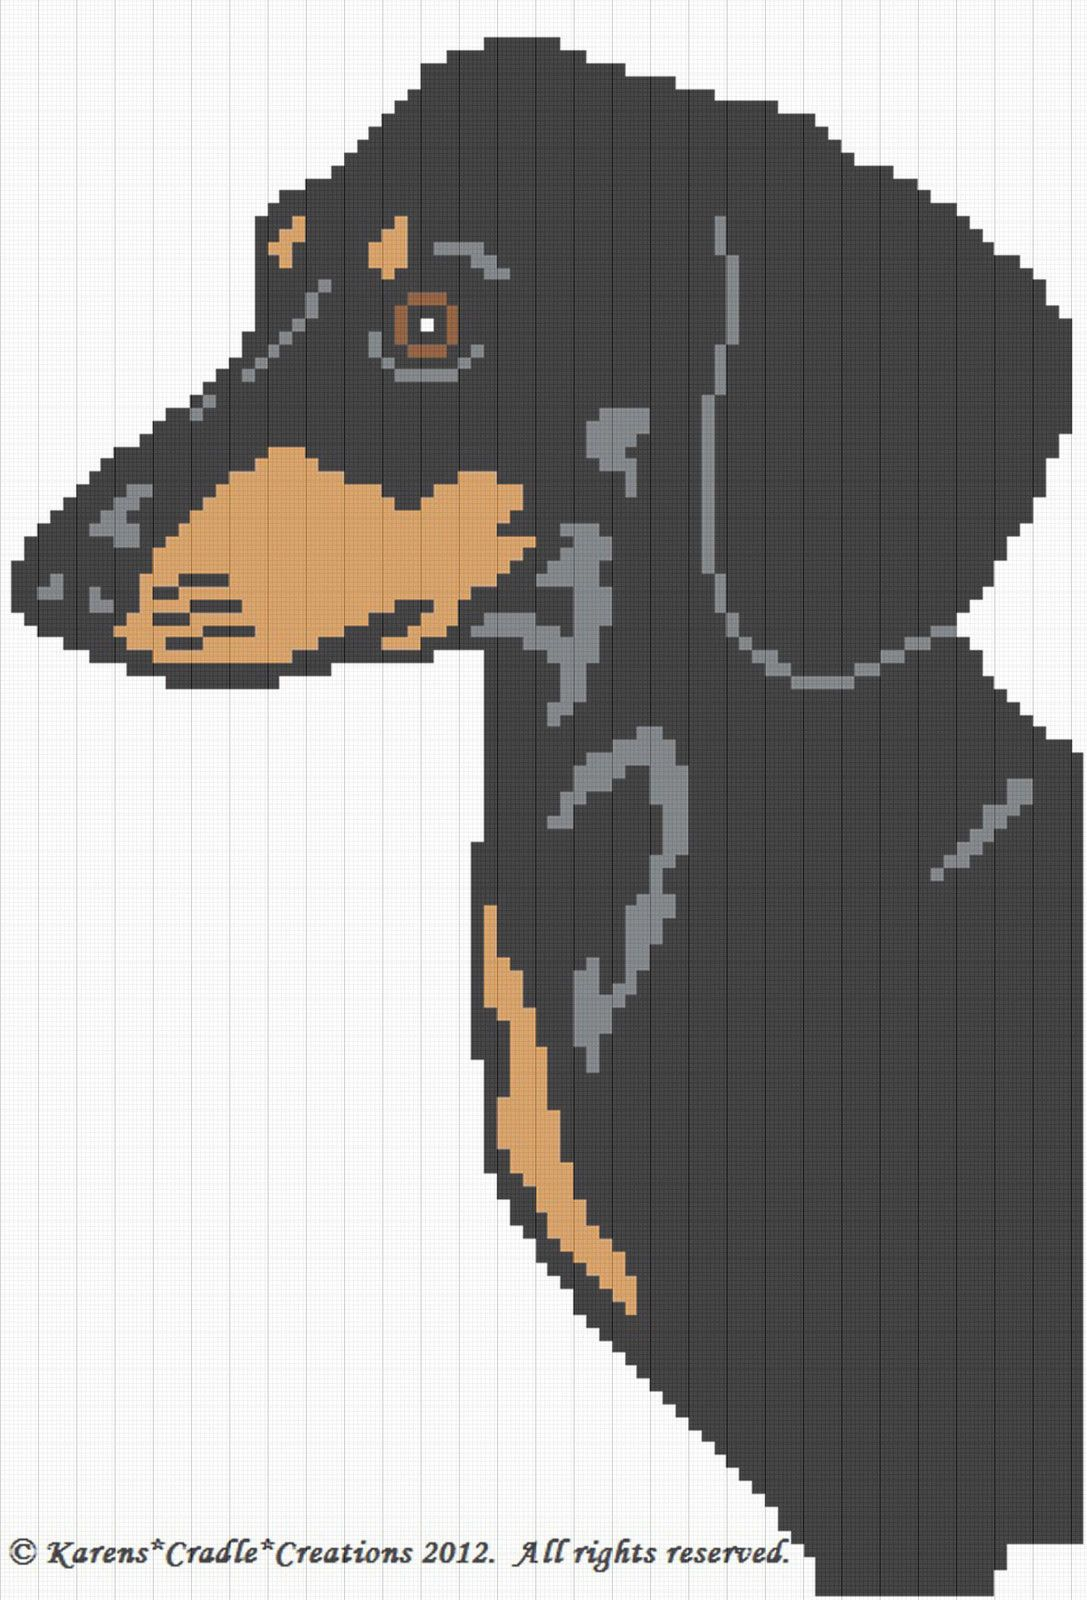 Crochet Patterns - DACHSHUND dog Graph Afghan Pattern Chart ...